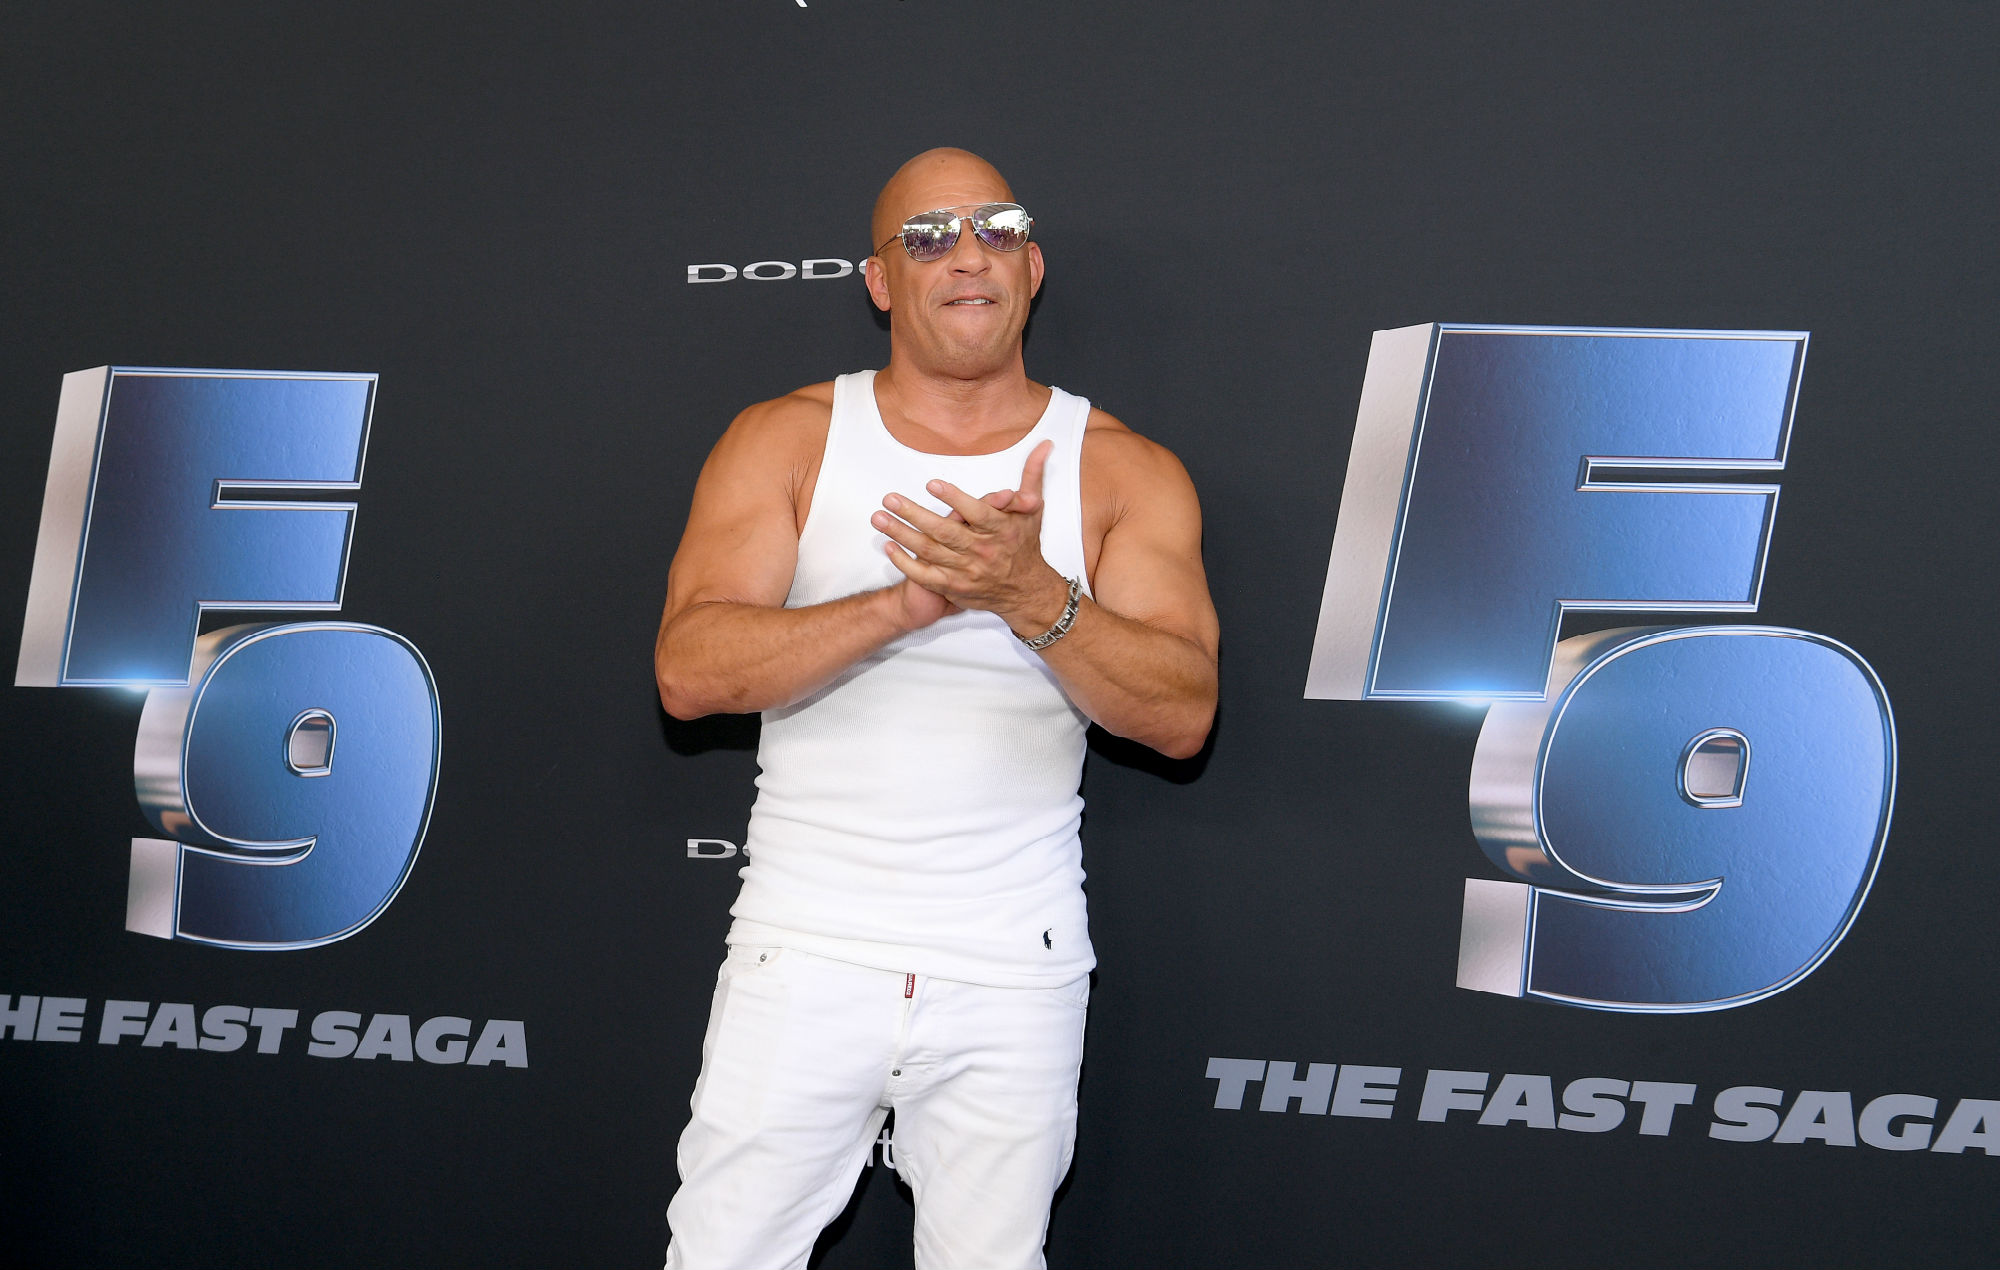 The thrilling new trailer for 'Fast and Furious 9' has arrived